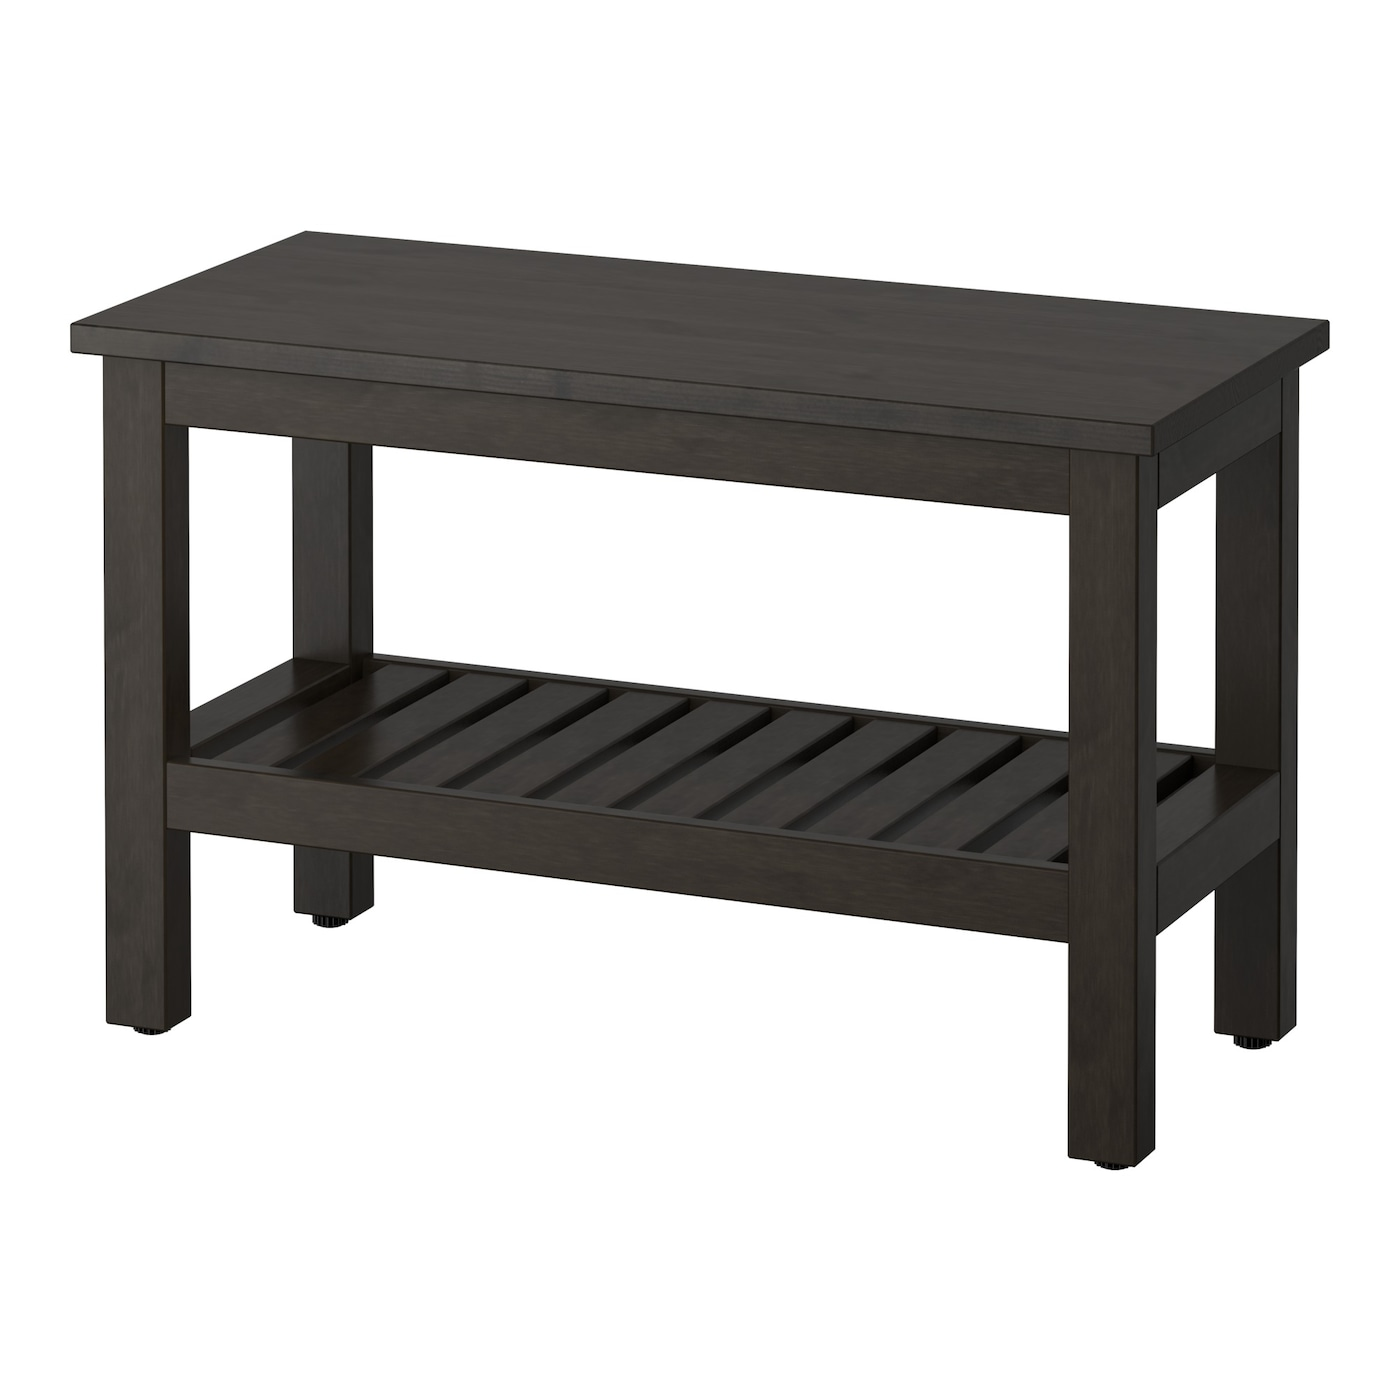 hemnes bench blackbrown stain  cm  ikea - ikea hemnes bench